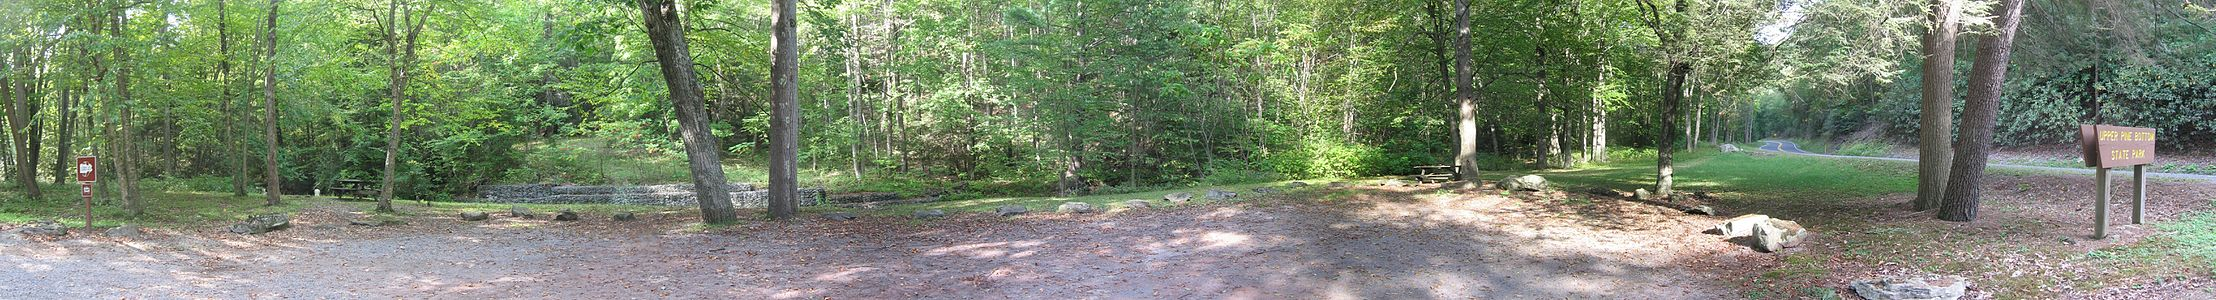 "A gravel lot surrounded by grass, large rocks and some large trees is in the foreground, with two picnic tables, the banks of a small stream and dense forest in the background. At the left is a sign reading ""Carry in, carry out"" and at right is a sign reading ""Upper Pine Bottom State Park"" with a two-lane highway behind it."